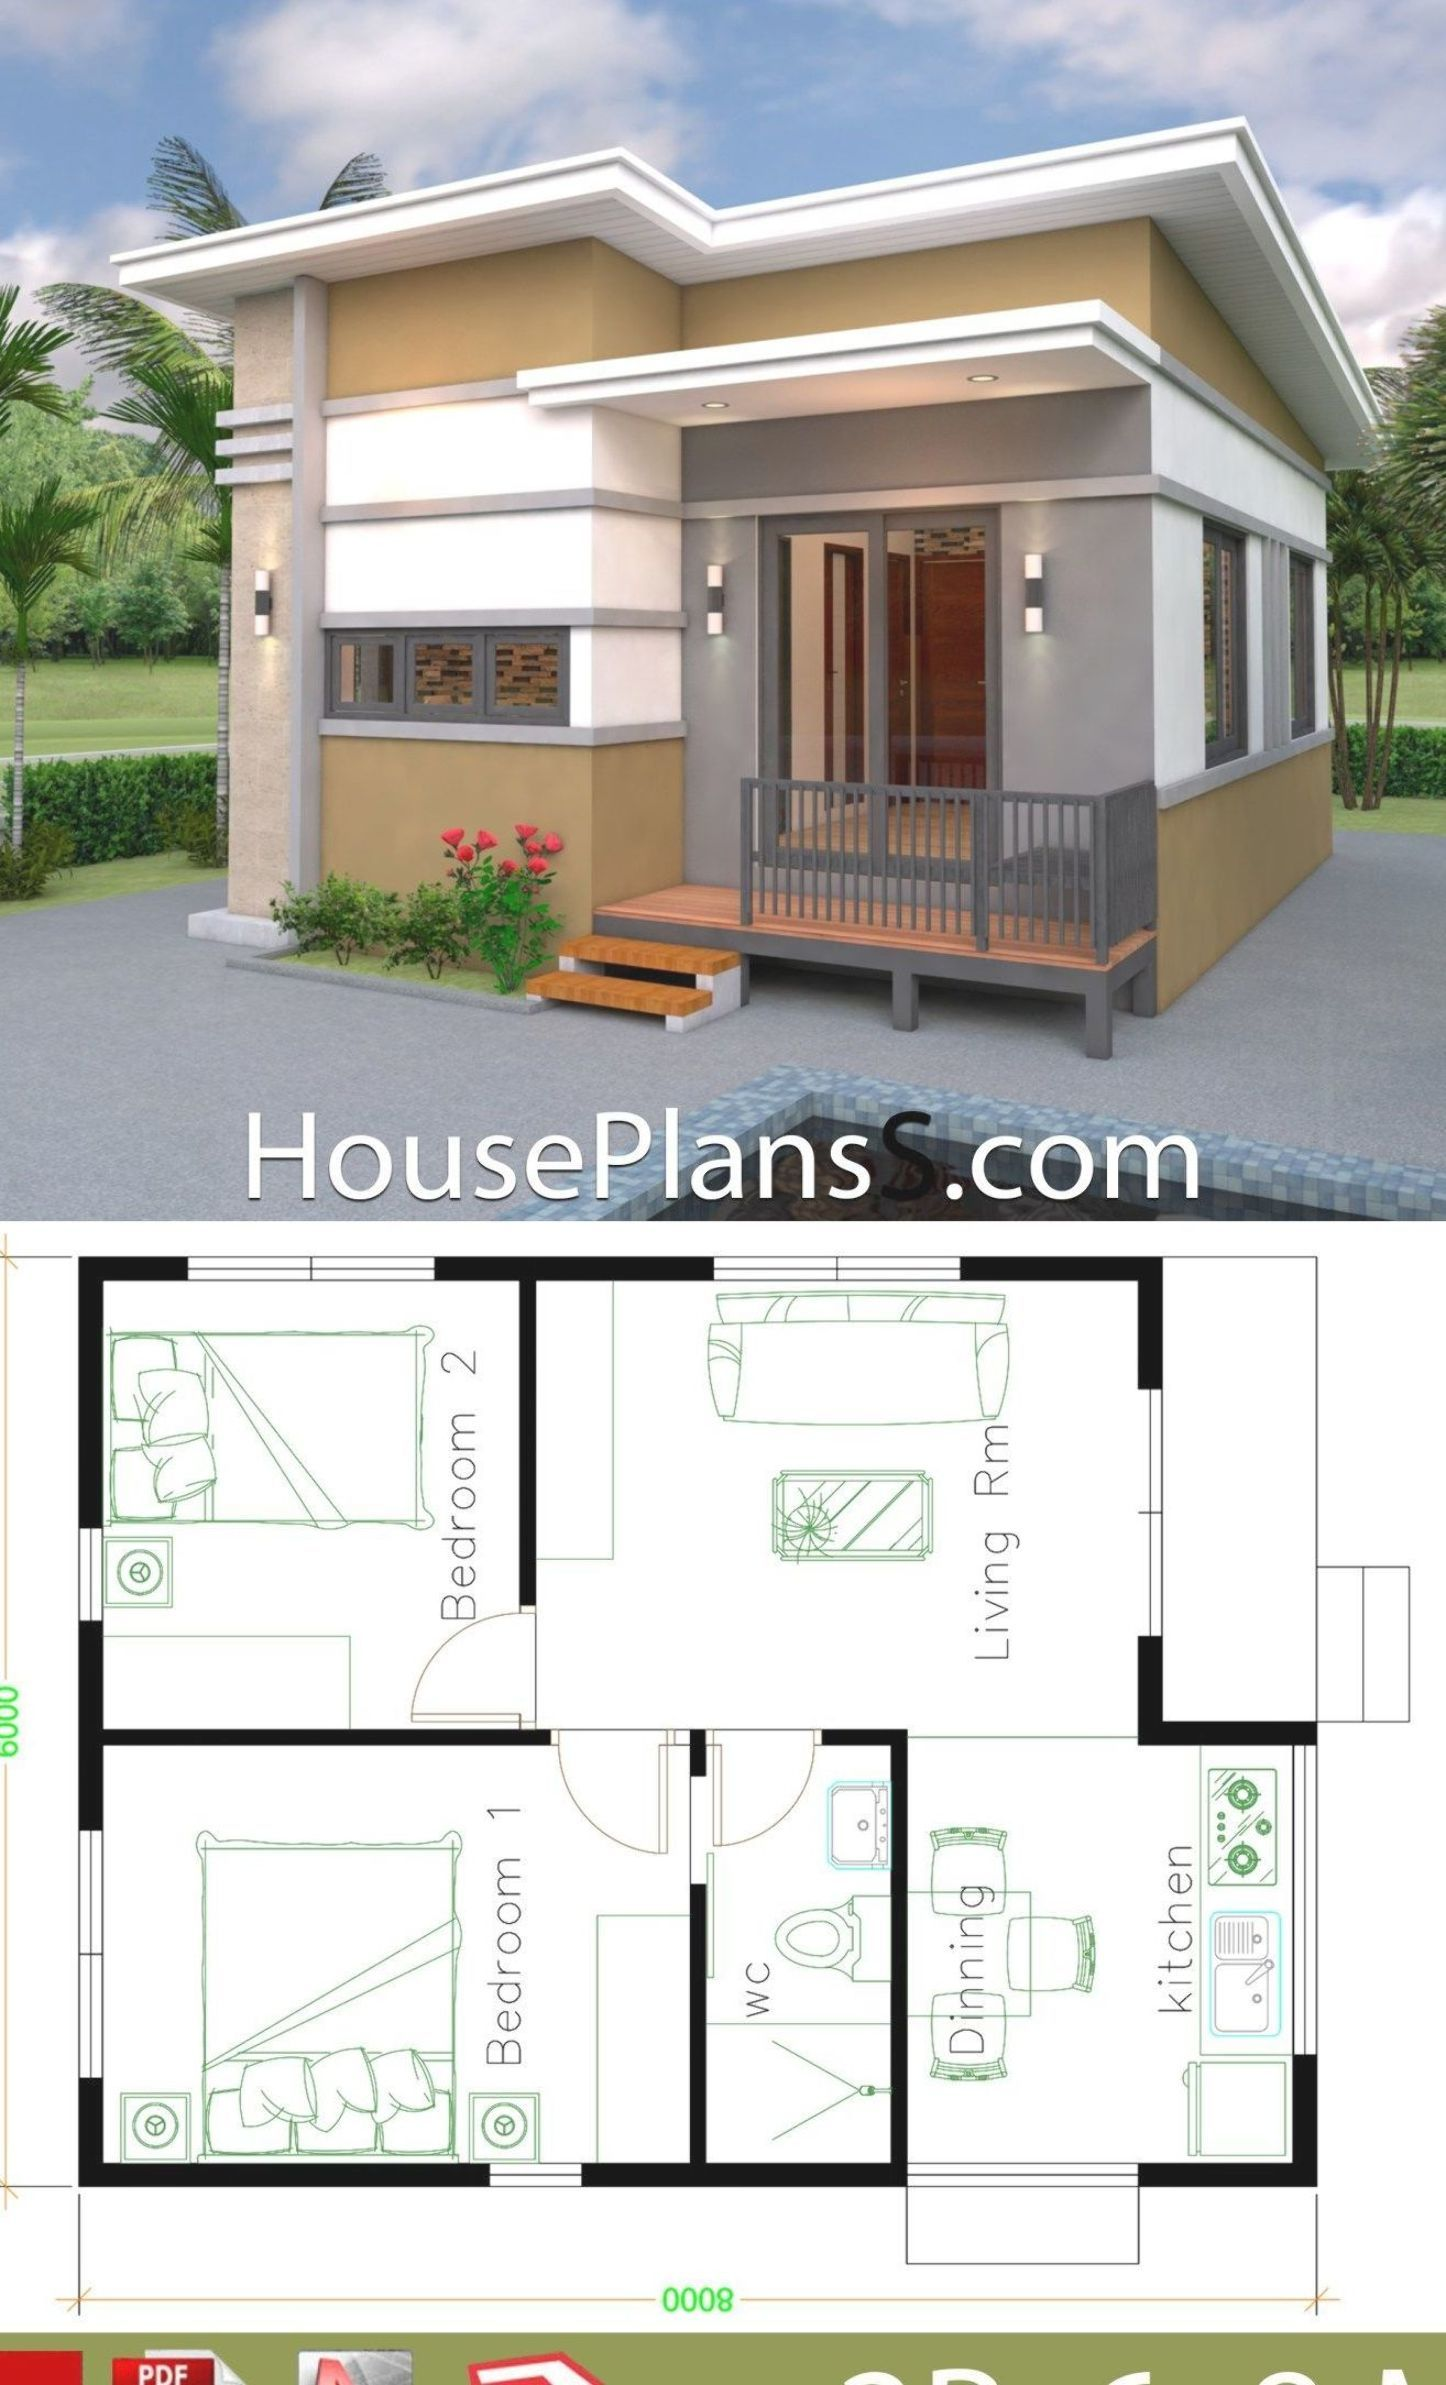 Small House Design Plans 6x8 With 2 Bedrooms House Plans Sam Small House Design Plans House Plans 2 Bedroom House Design